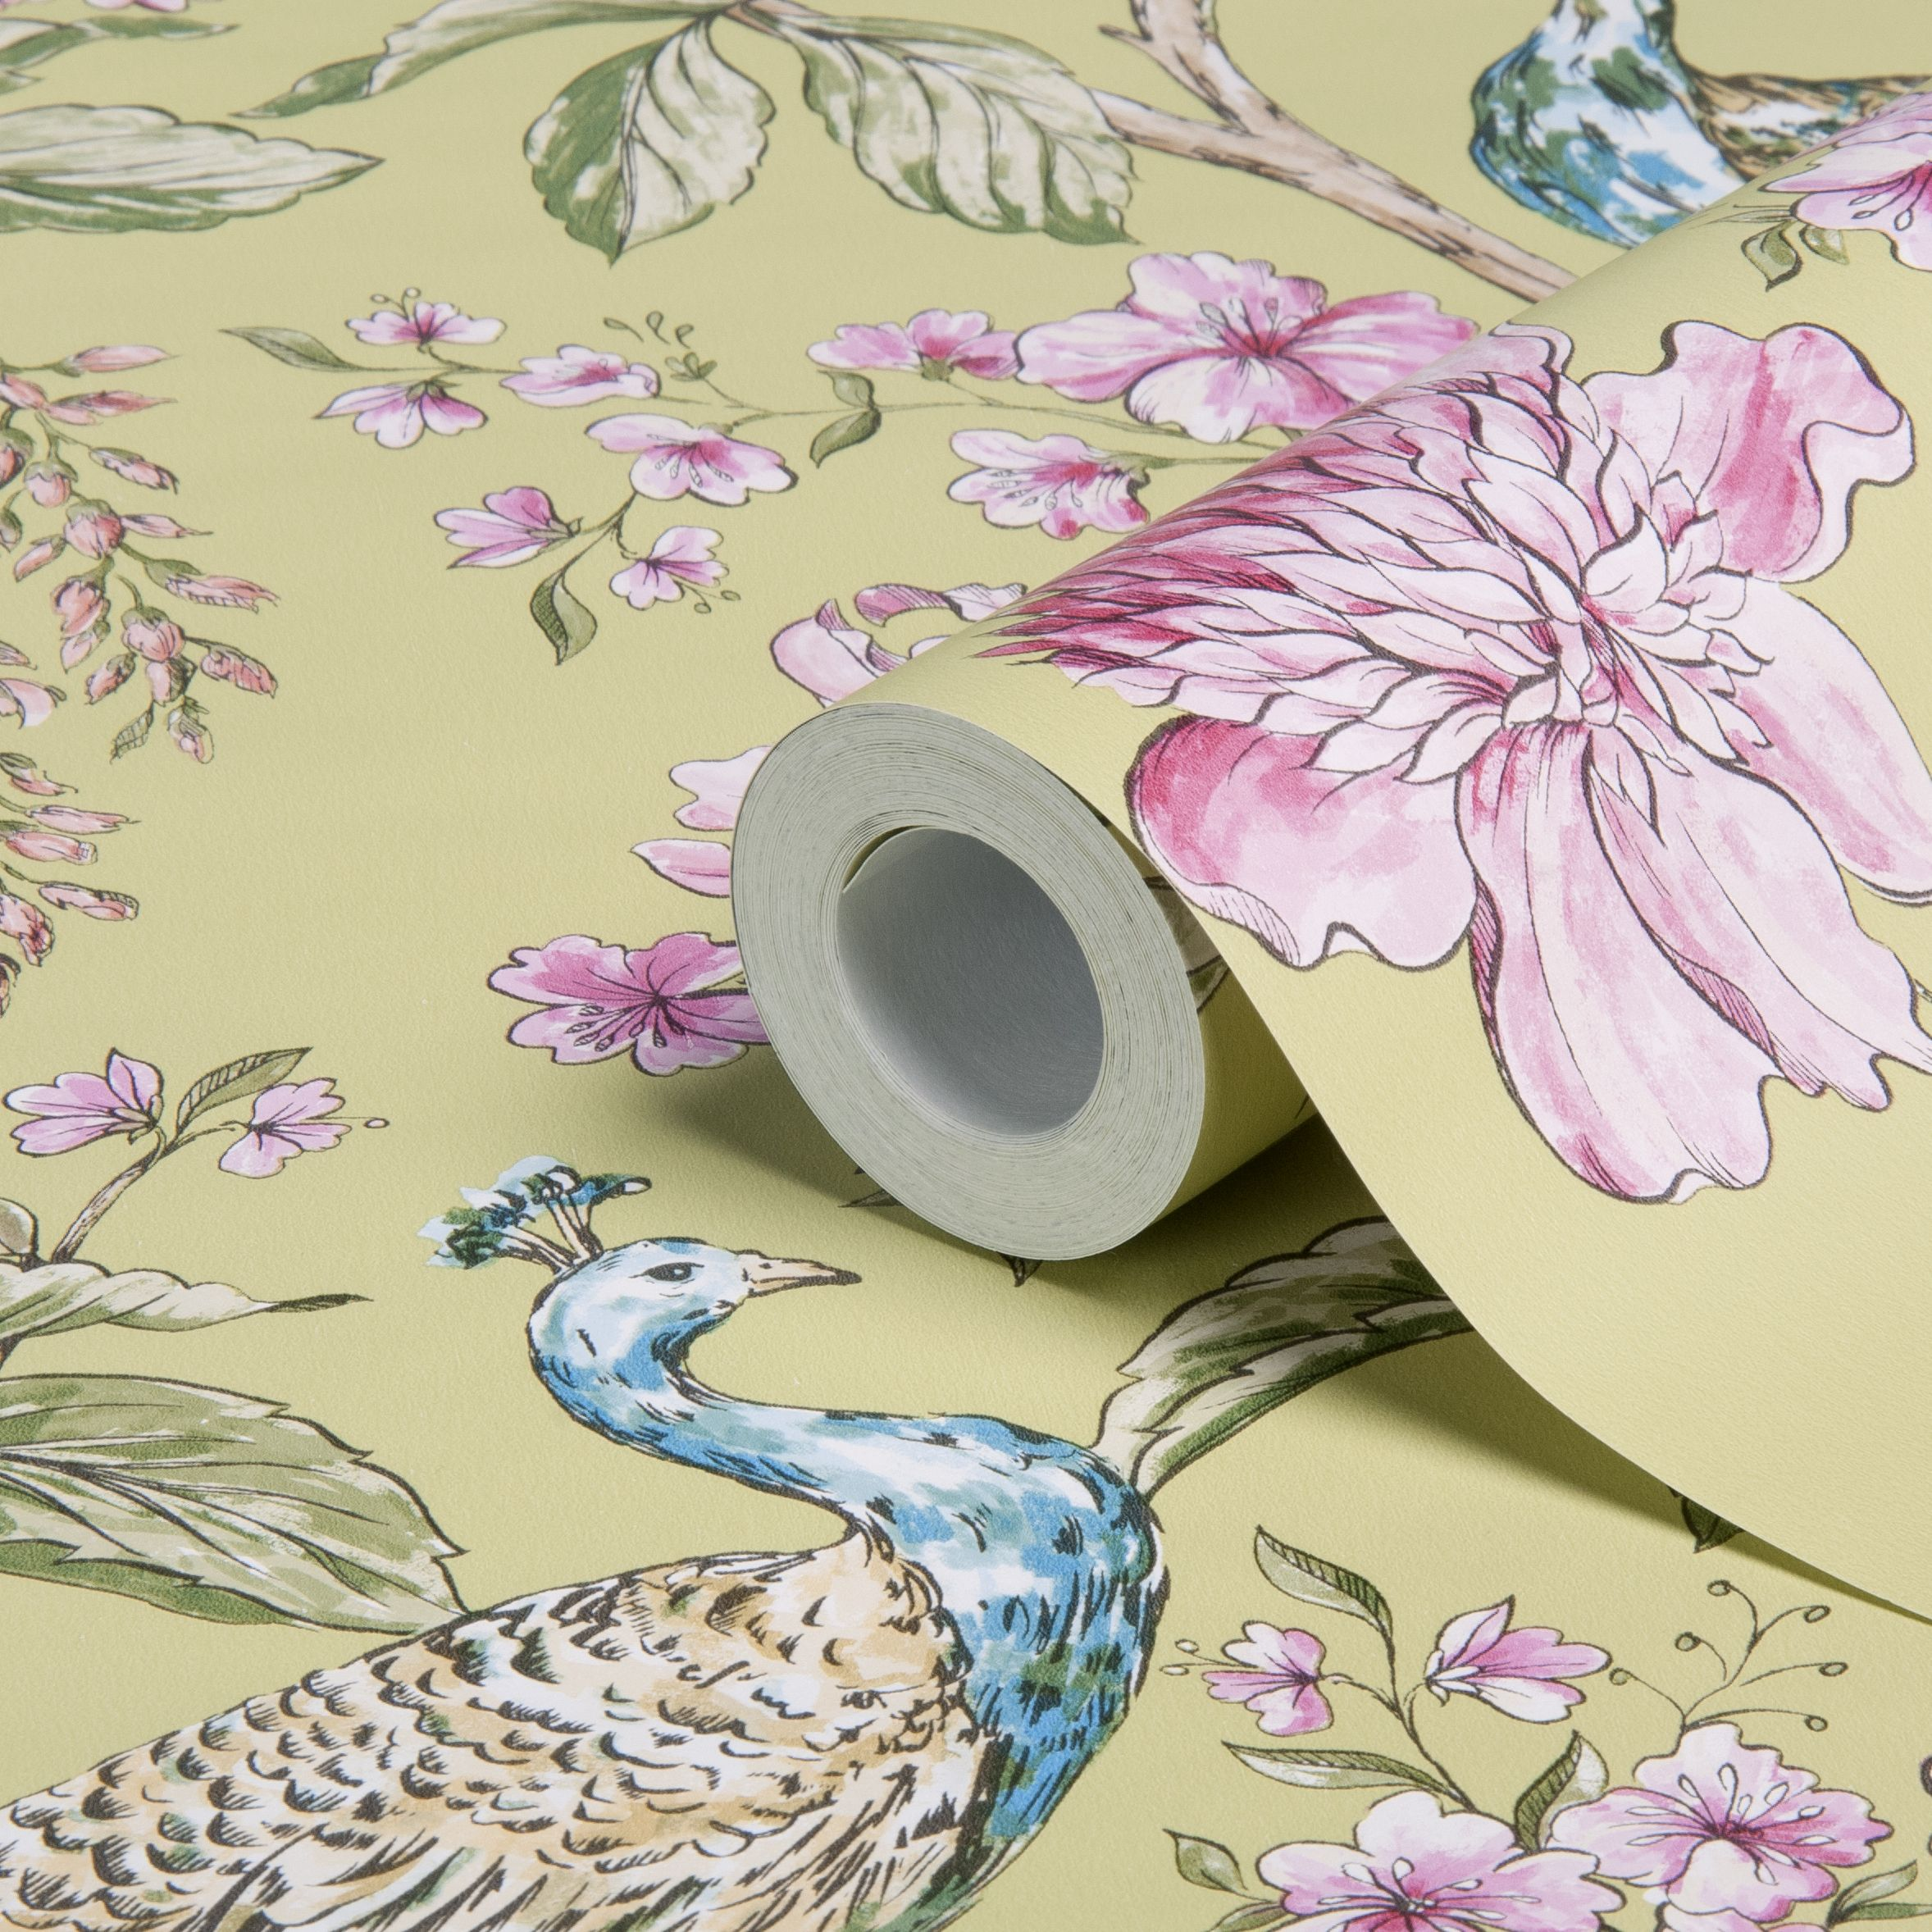 Sophie conran hibiscus citrus peacock floral wallpaper B q bathroom design service